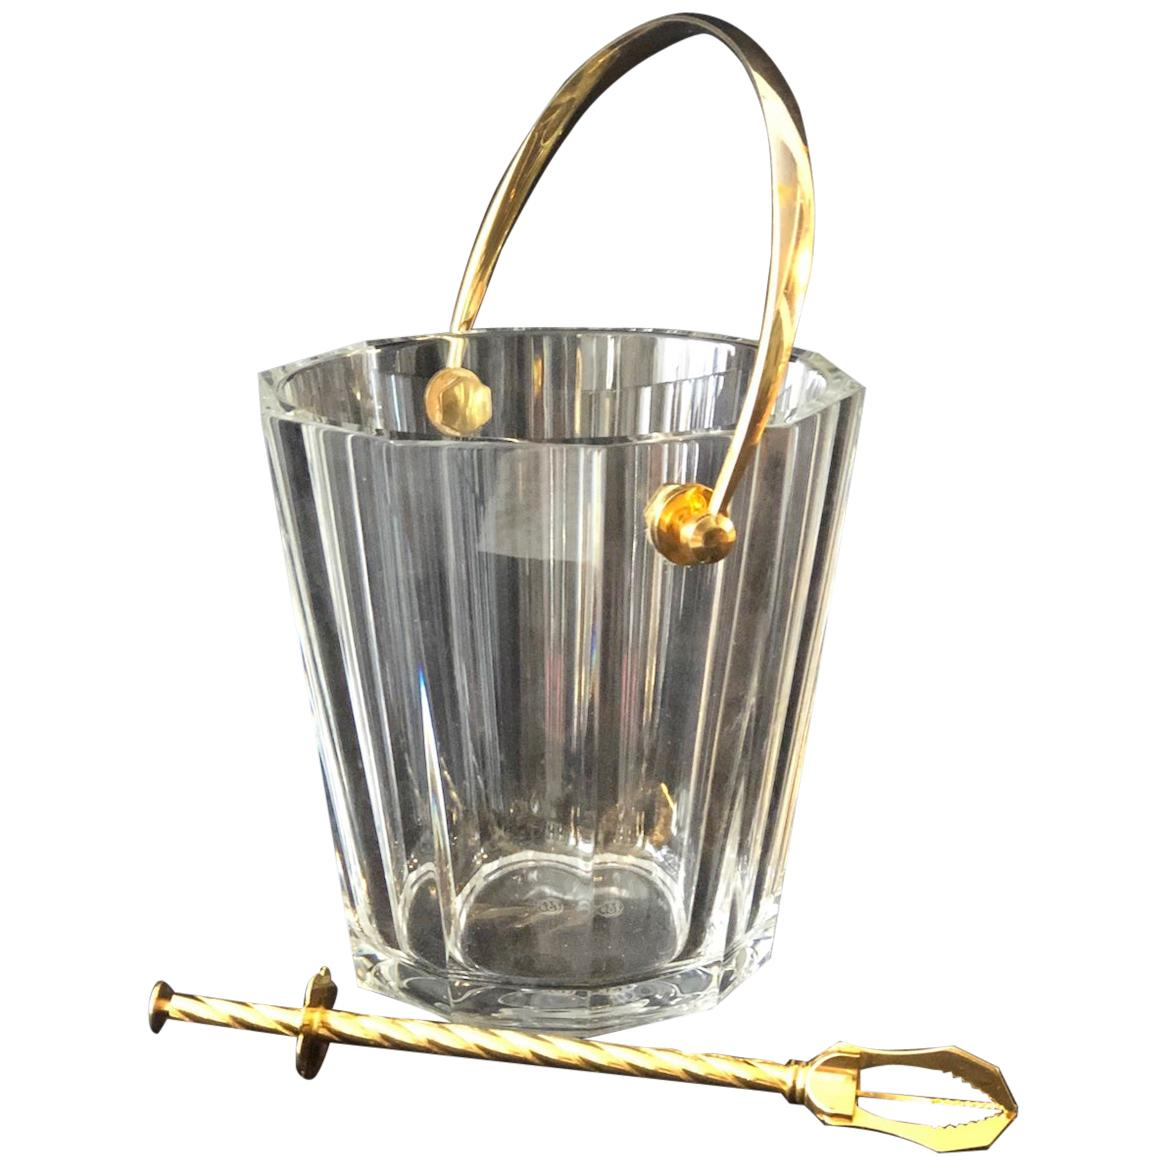 Baccarat Crystal Ice Bucket / Champagne Cooler with Handle & Ice Tongs, France